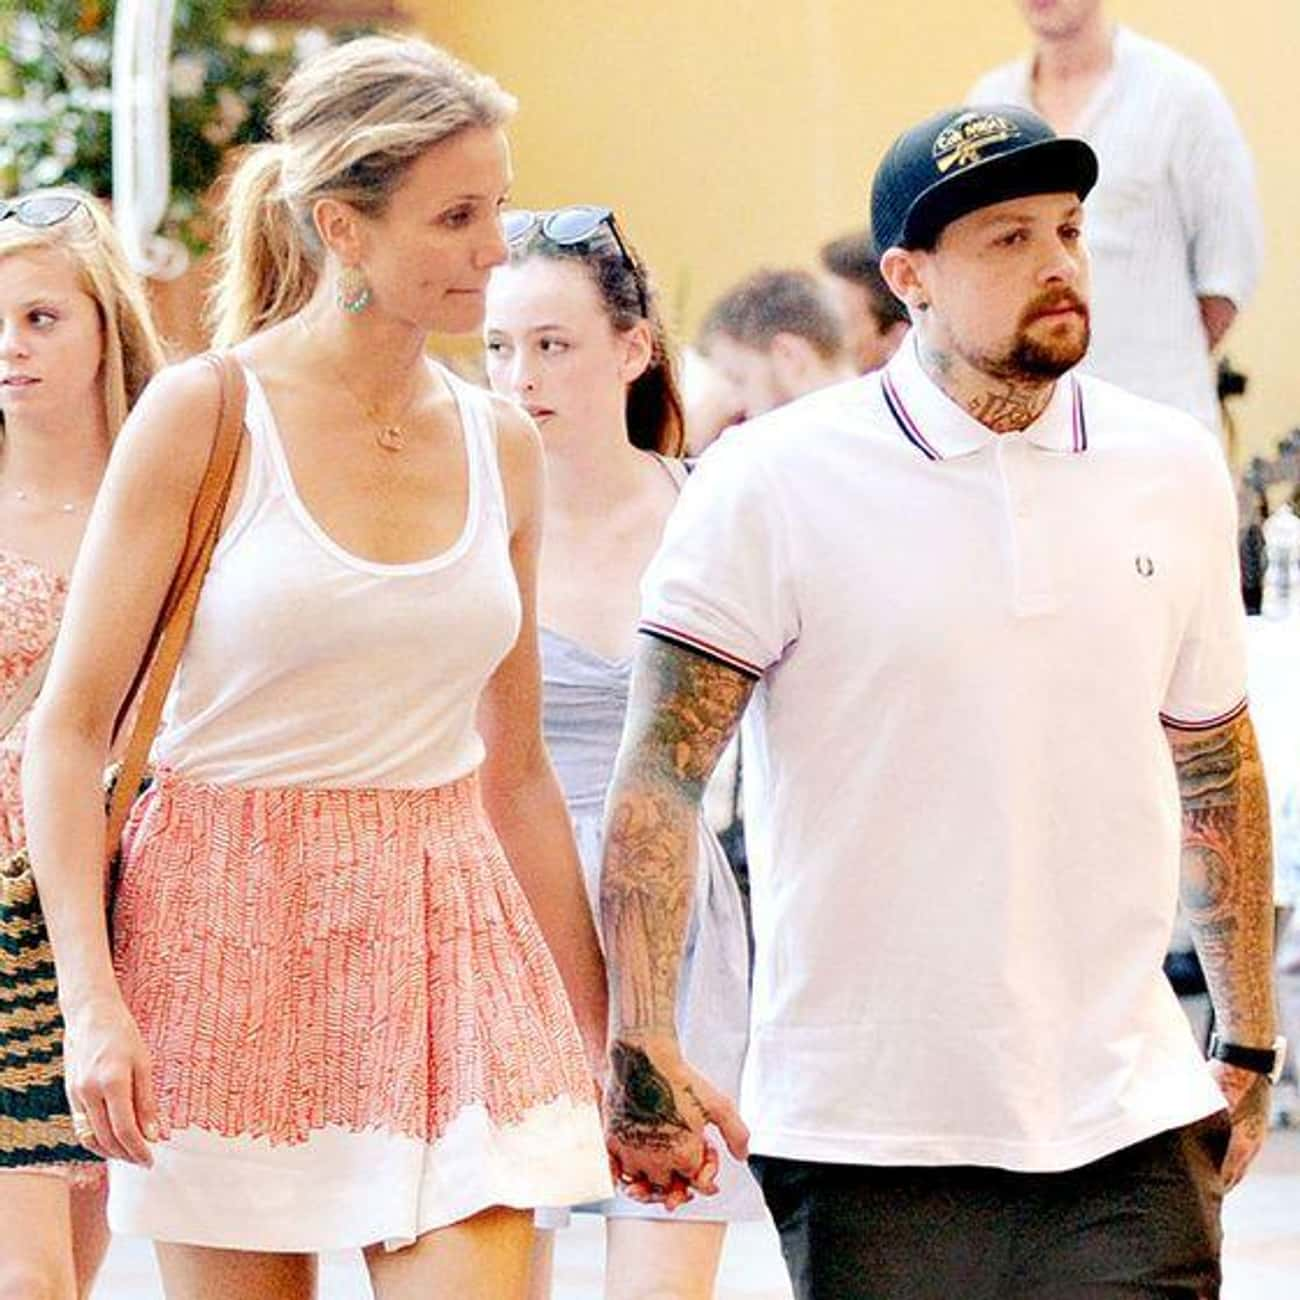 Cameron Diaz and Benji Madden is listed (or ranked) 3 on the list Celebrity Couples Where the Woman Is Taller